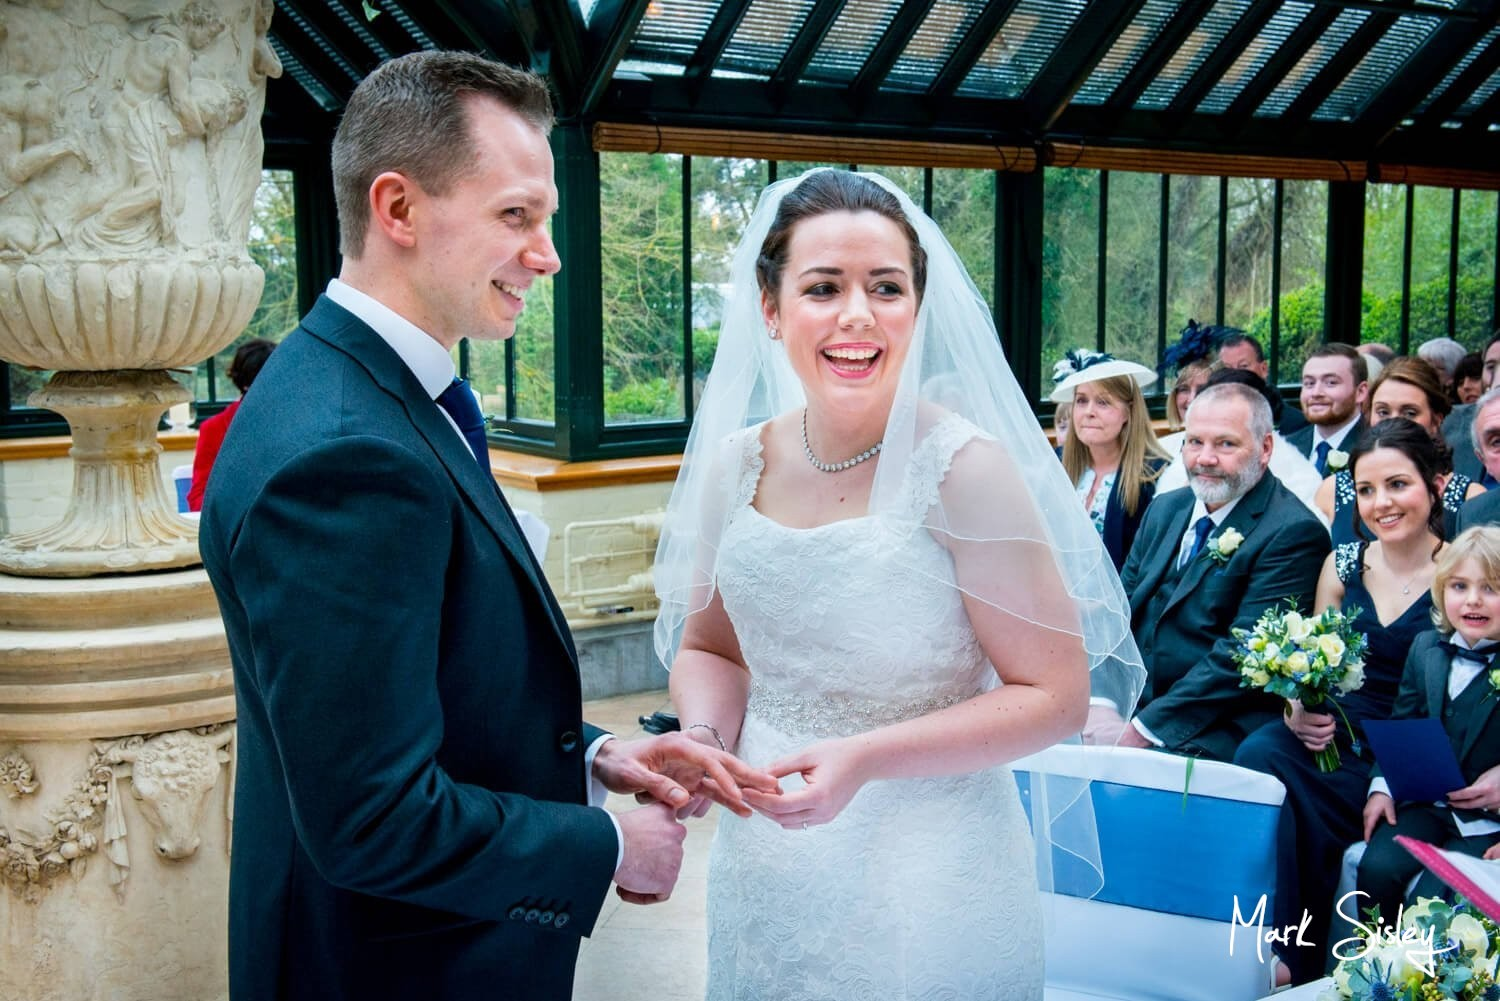 The Dairy Waddesdon newlweds exchange vows at their Spring wedding